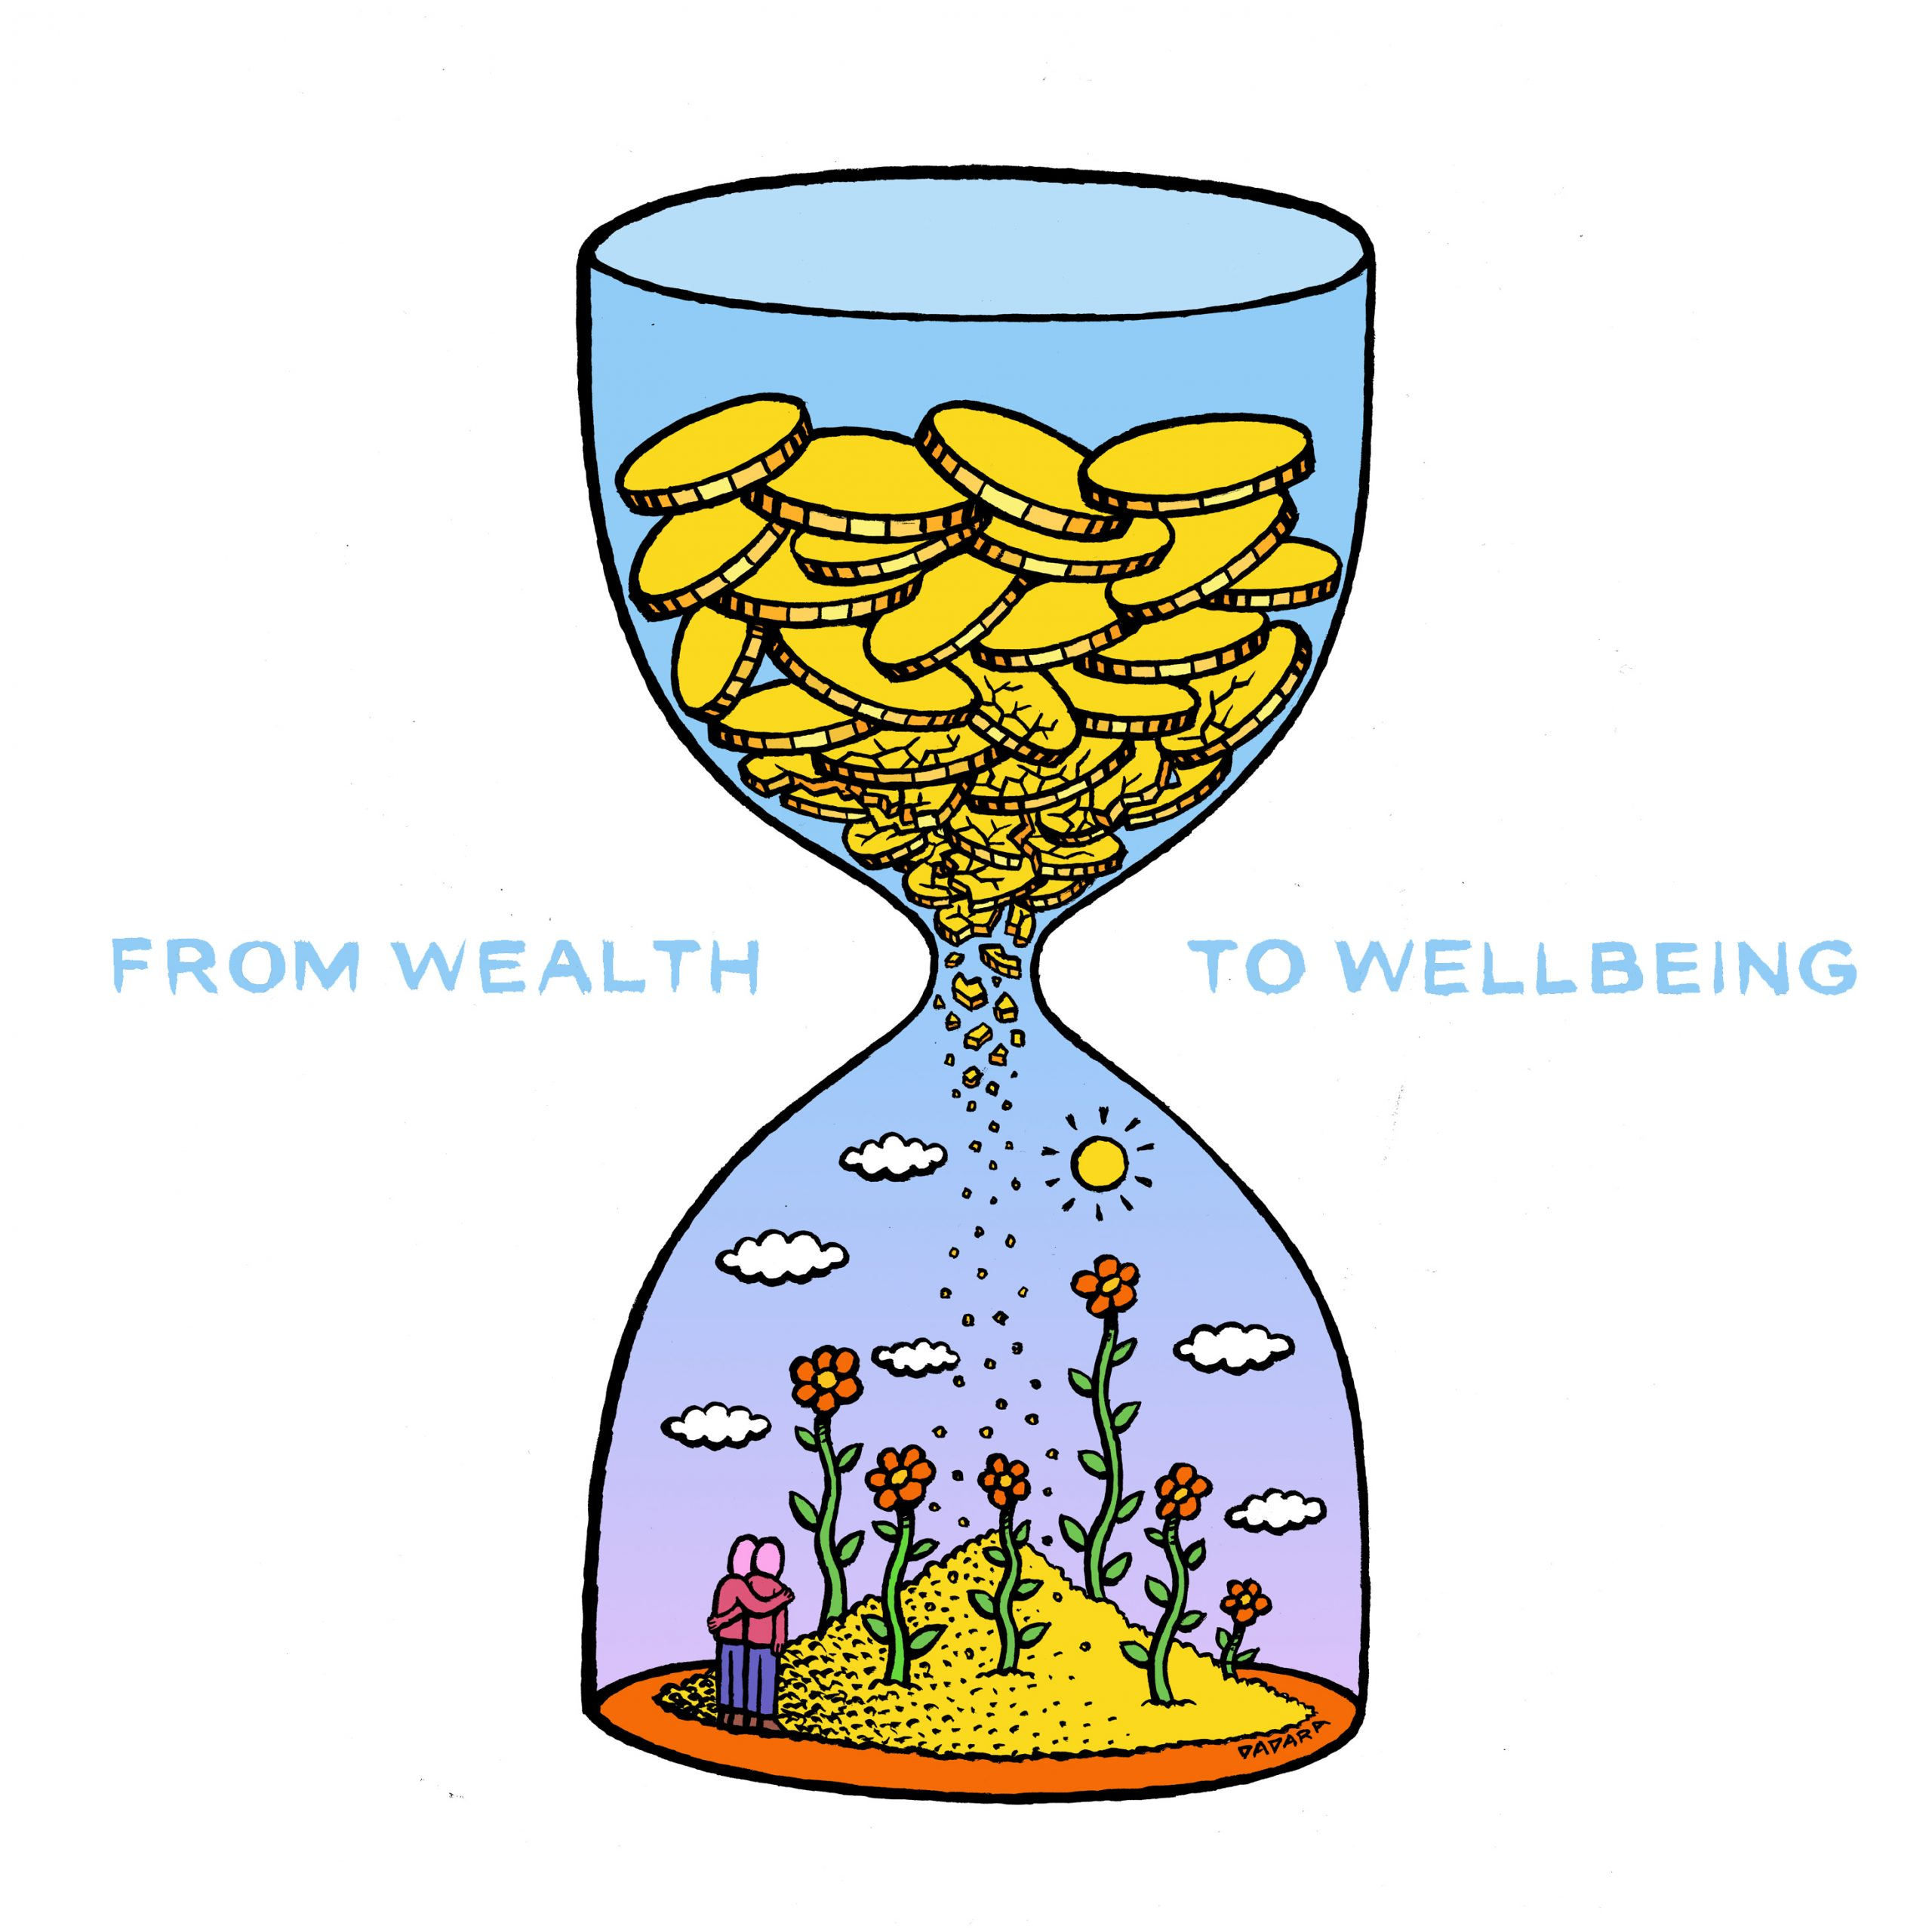 An illustration of an hourglass with money in the top part and image of happy society in the bottom part. Text: From wealth to well-being.